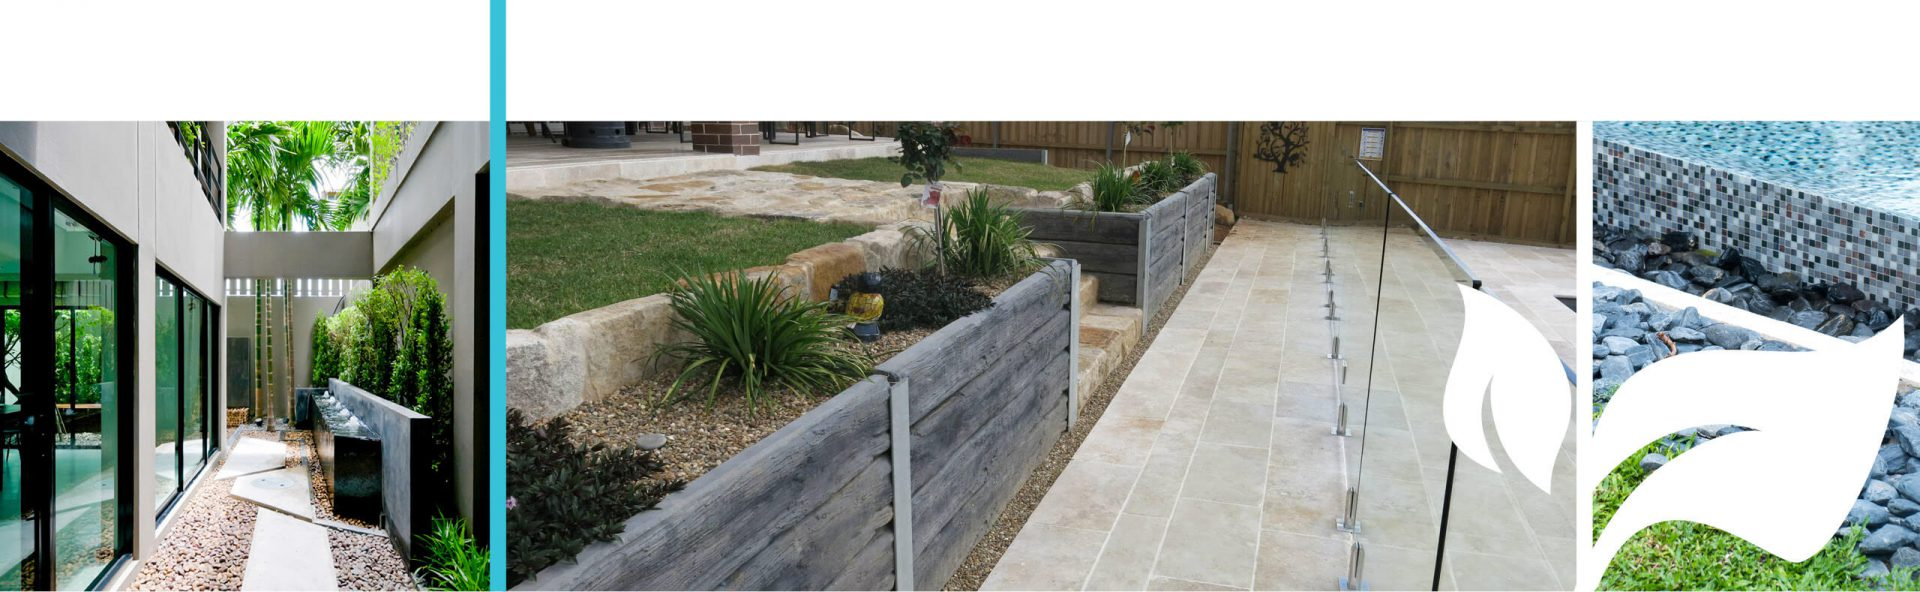 Paved area with retaining wall